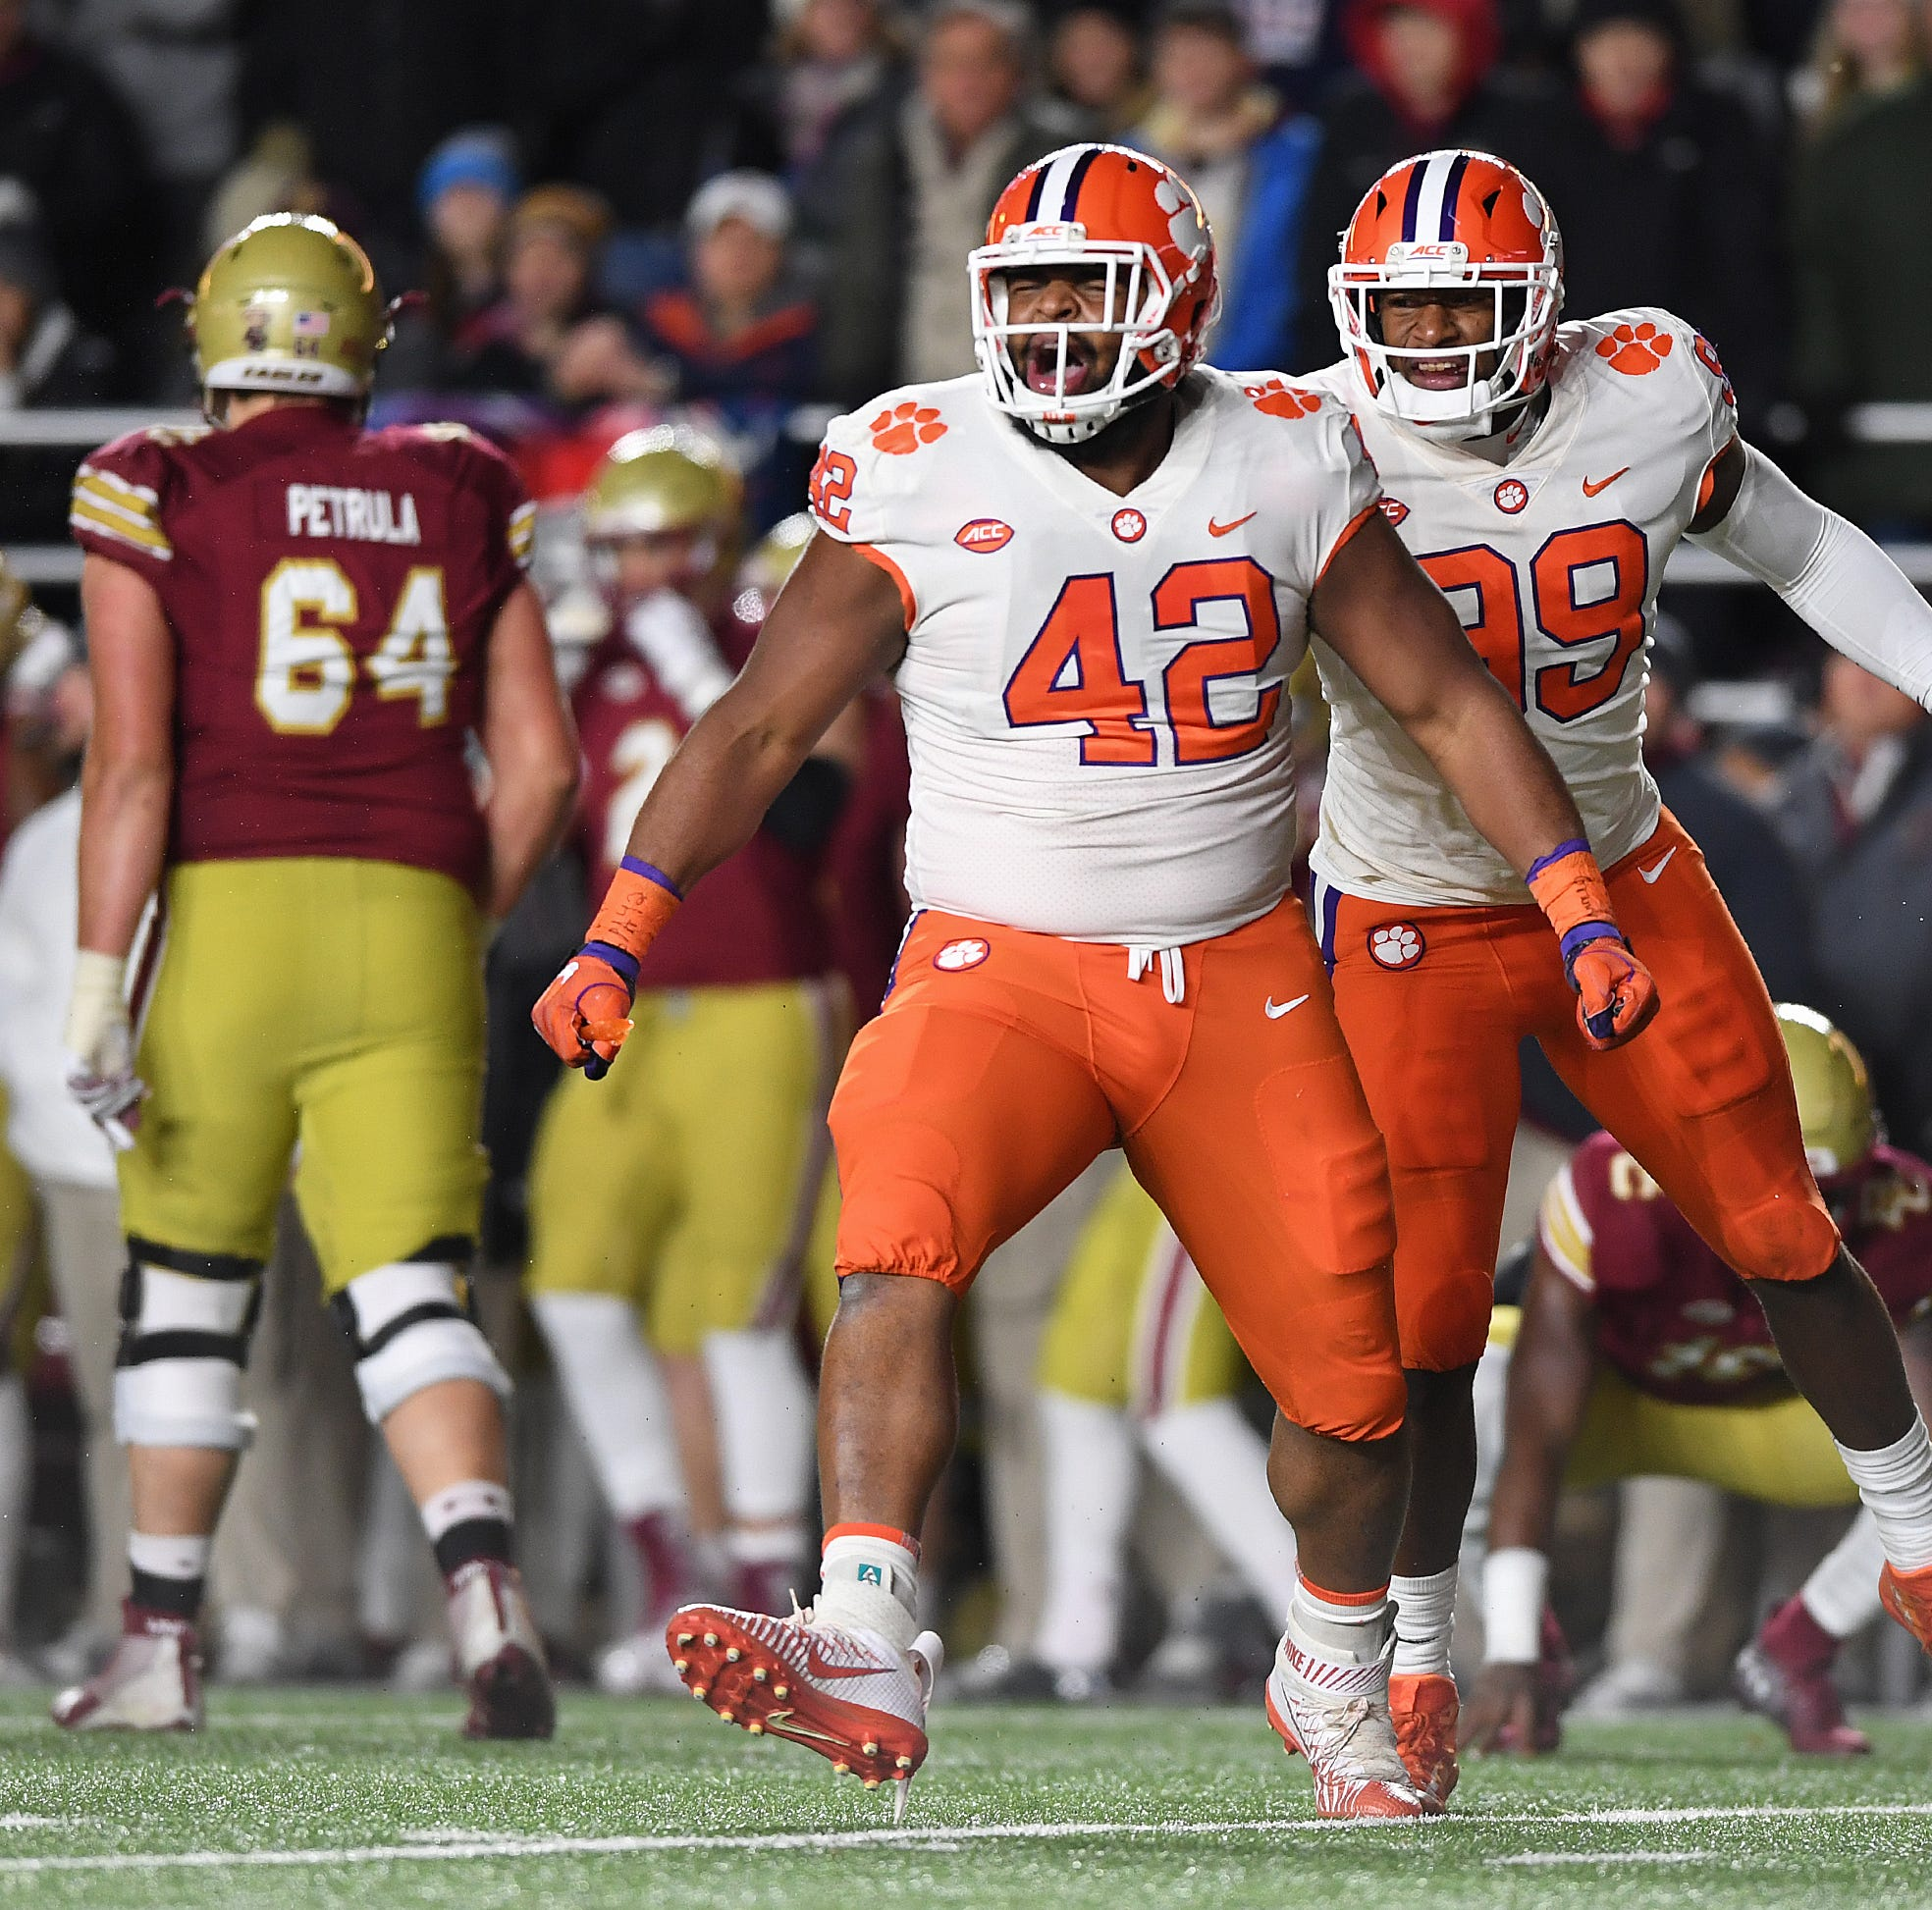 The offense is getting headlines, but the defense is Clemson's dominant side